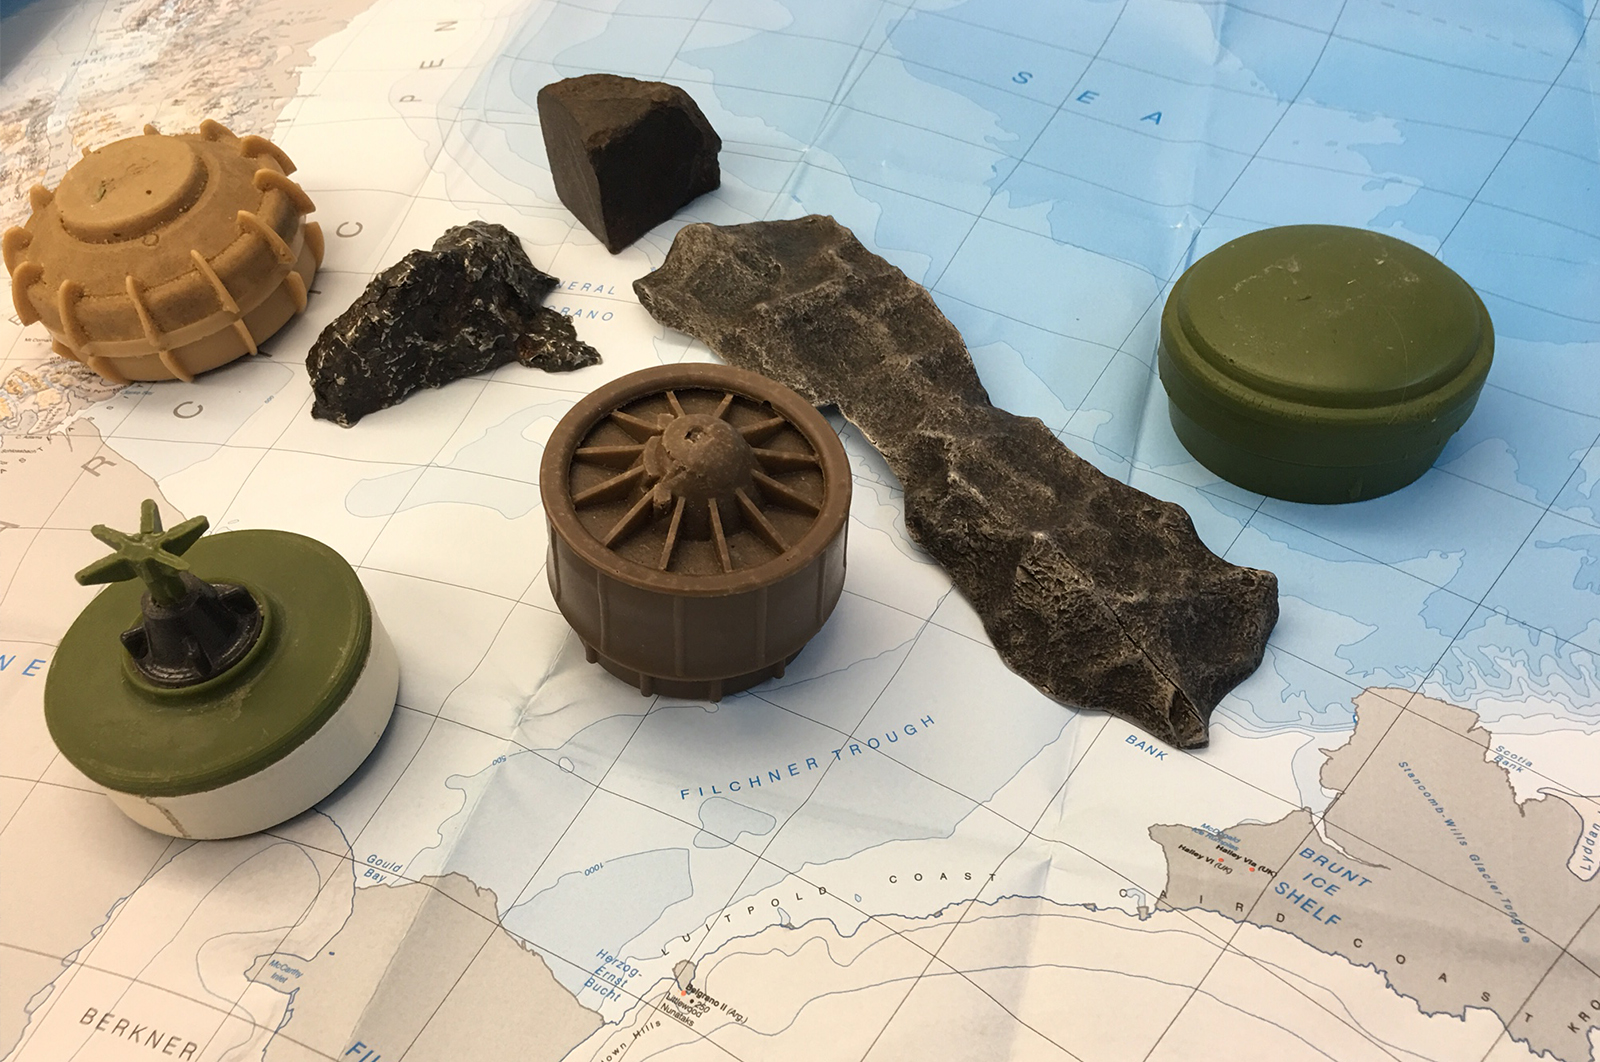 Meteorite samples and dummy landmines on map of Antarctica (Image UoM)